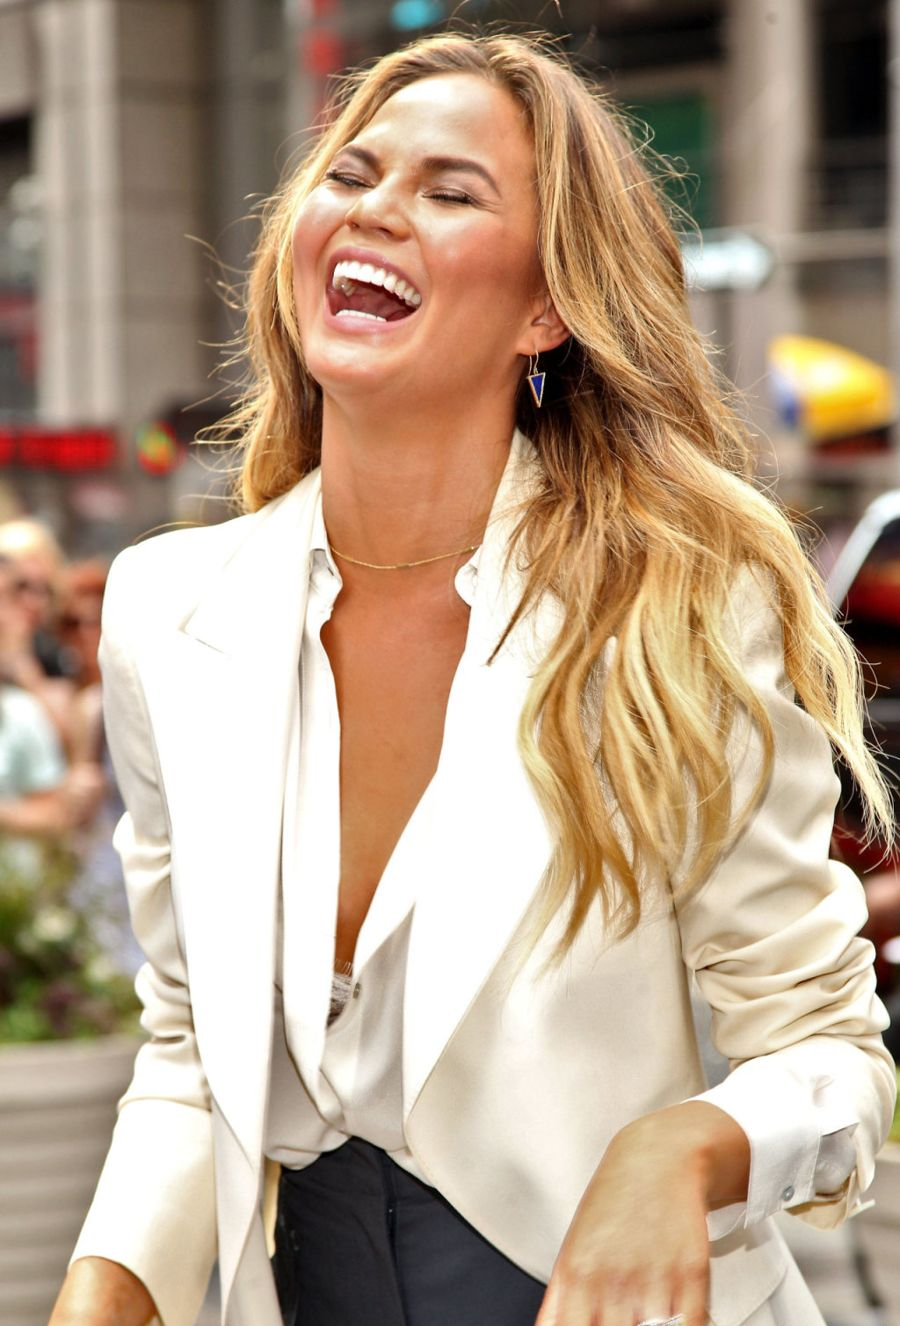 Chrissy Teigen - Viacom And Spike TV Ring NASDAQ Opening